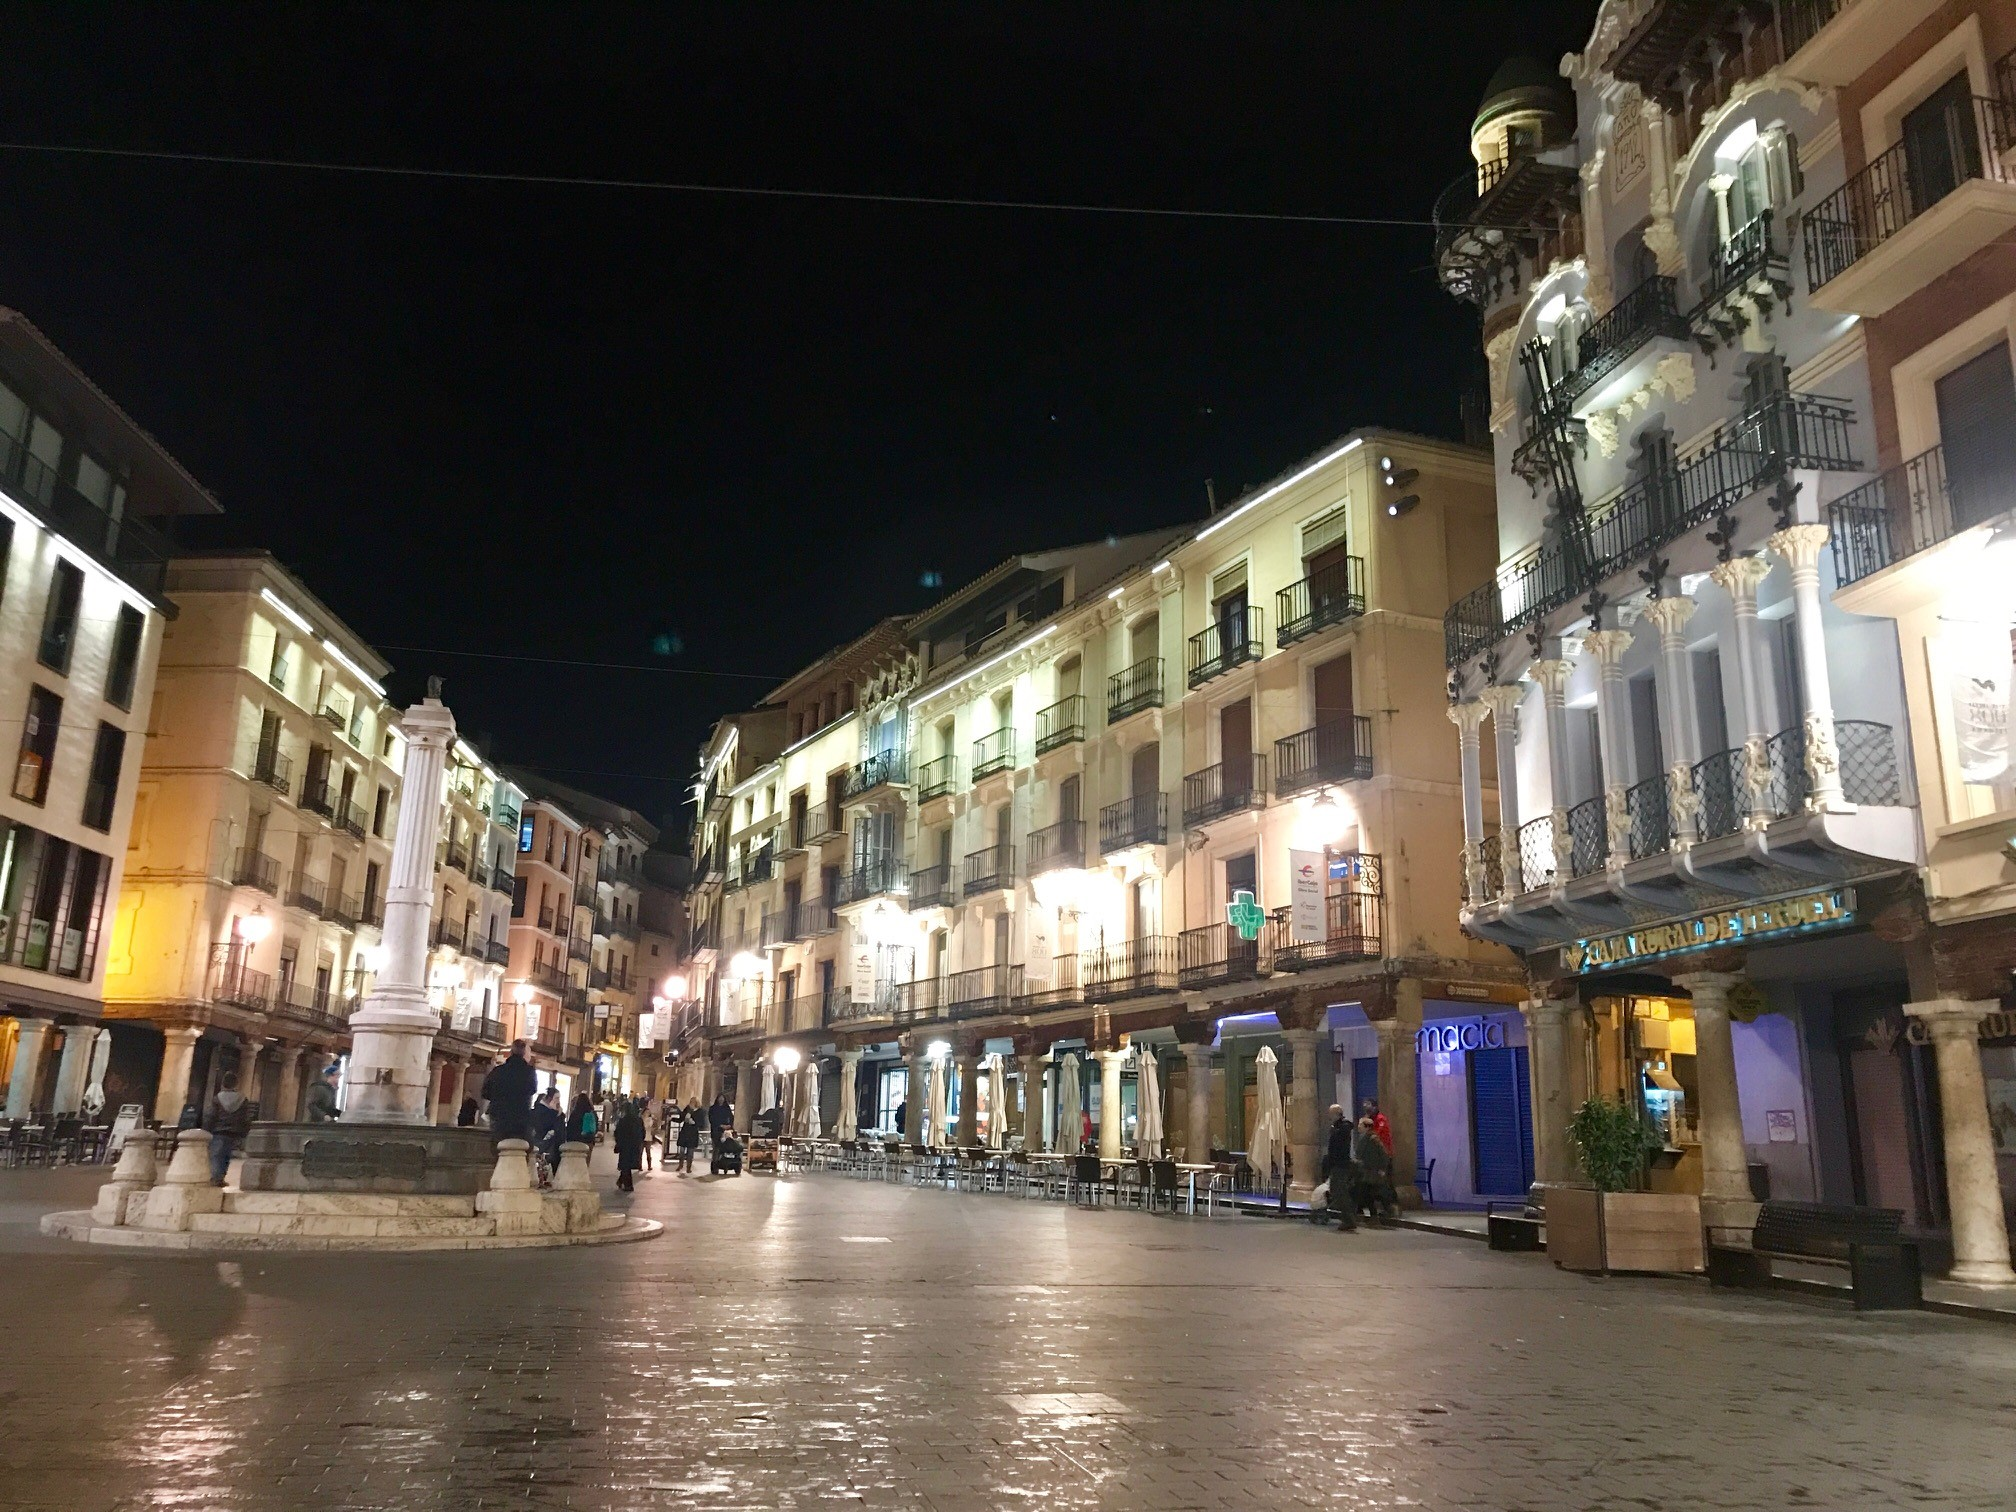 Night picture of Plaza del Turico in Teruel, Spain.